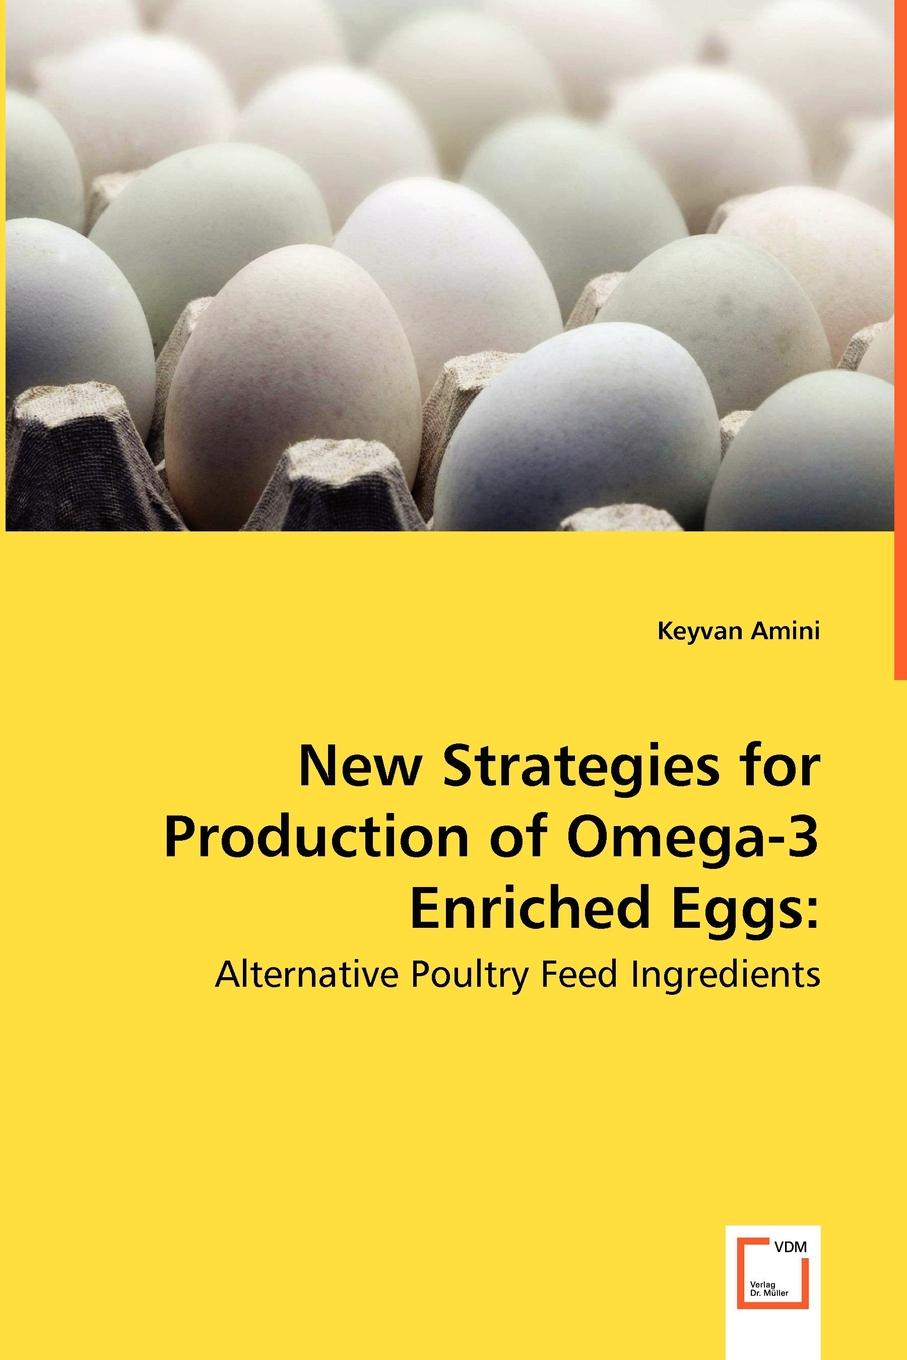 Keyvan Amini New Strategies for Production of Omega-3 Enriched Eggs. Alternative Poultry Feed Ingredients игровой комплекc romana ск карусель 3 3 19 04 дачный